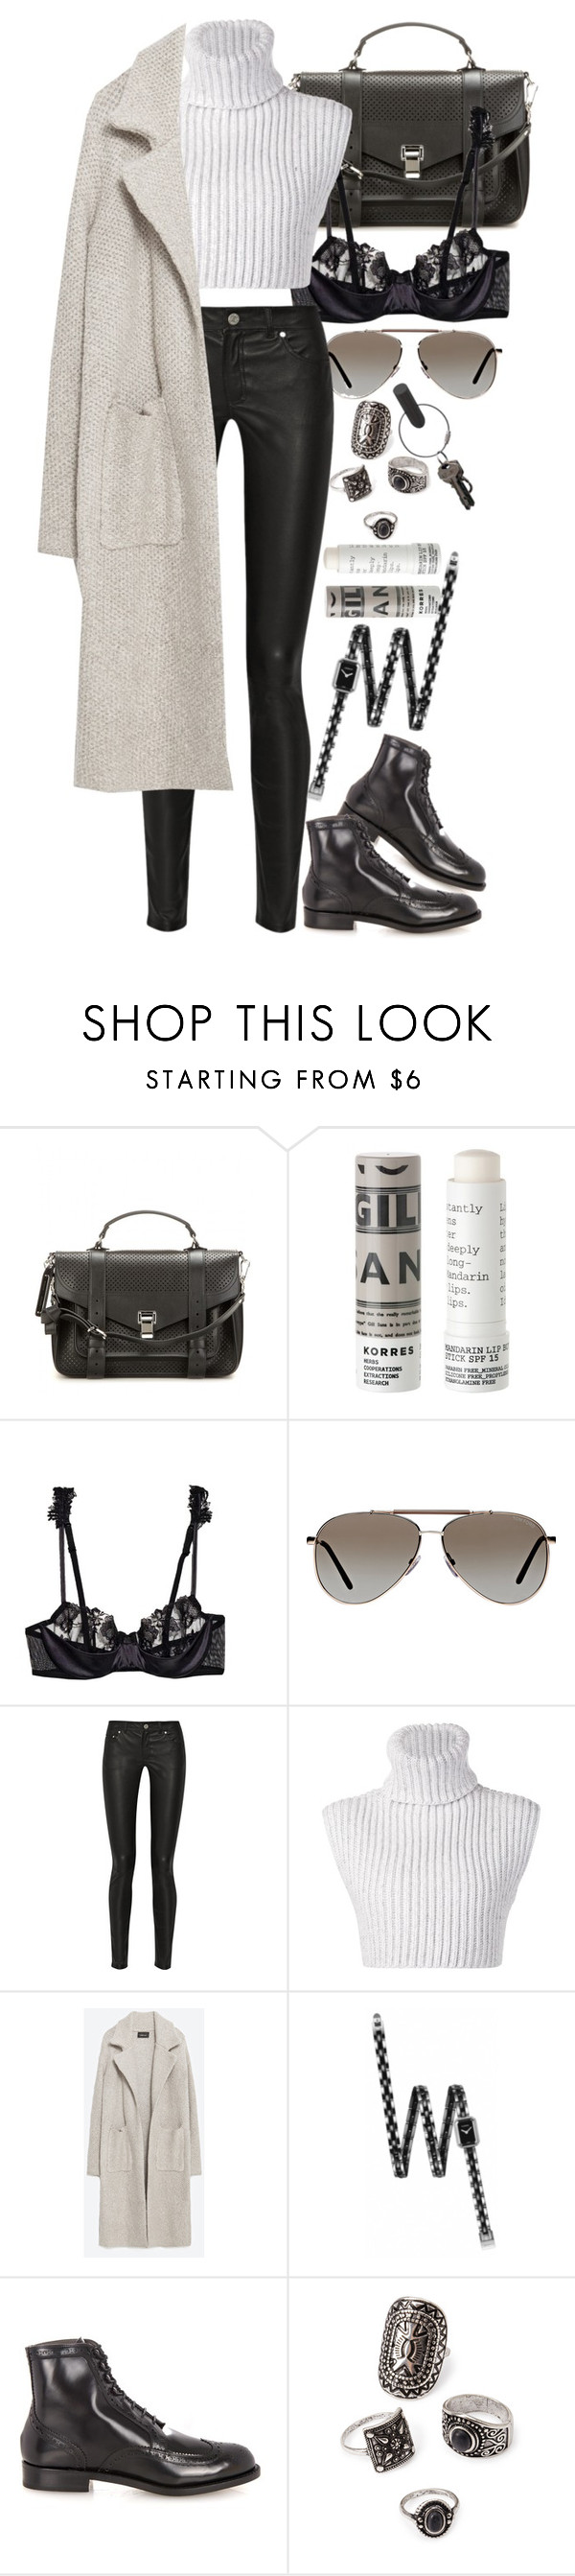 """""""Untitled #8112"""" by nikka-phillips ❤ liked on Polyvore featuring Proenza Schouler, Korres, La Perla, Tom Ford, Acne Studios, Baja East, Zara, Chanel, Robert Clergerie and Forever 21"""